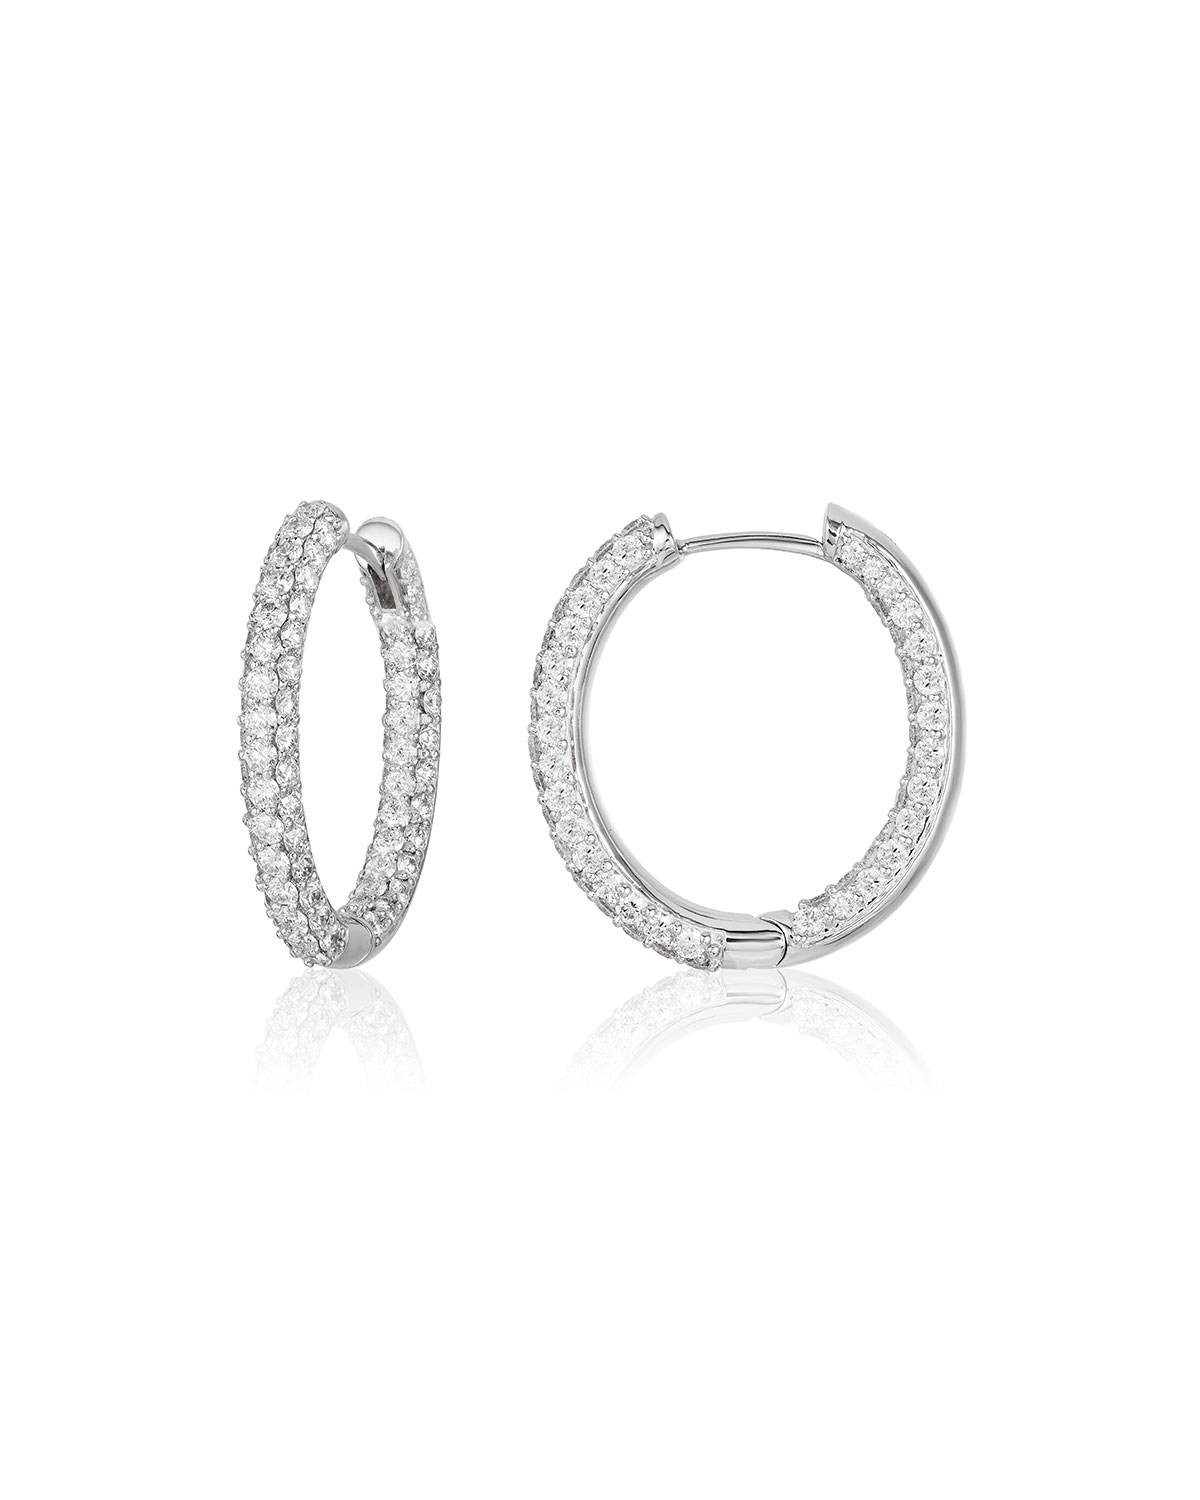 Medium Pave Diamond Hoop Earrings In 18k White Gold